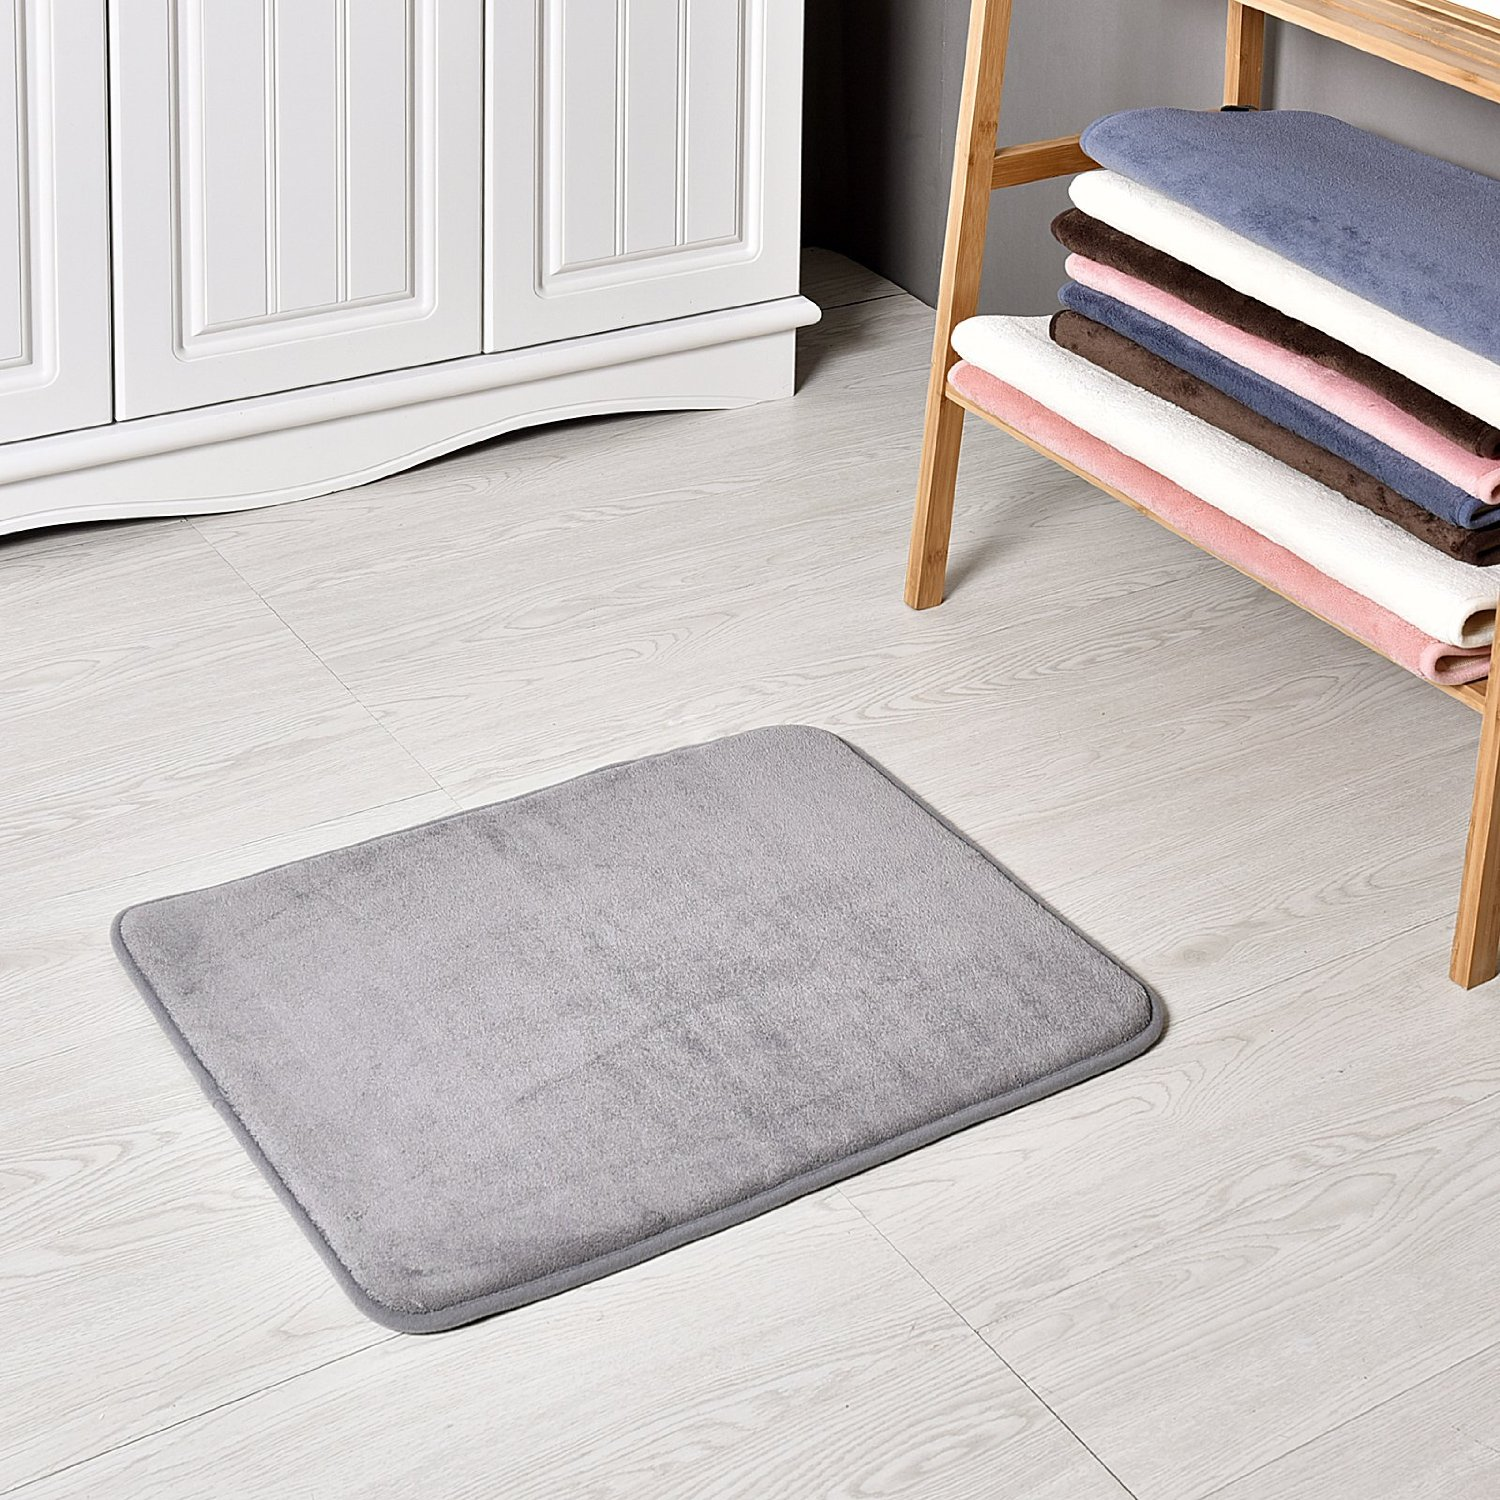 call mats front product us m bath with type mat heated sale h url fringe round gray dark life hmprod source size set